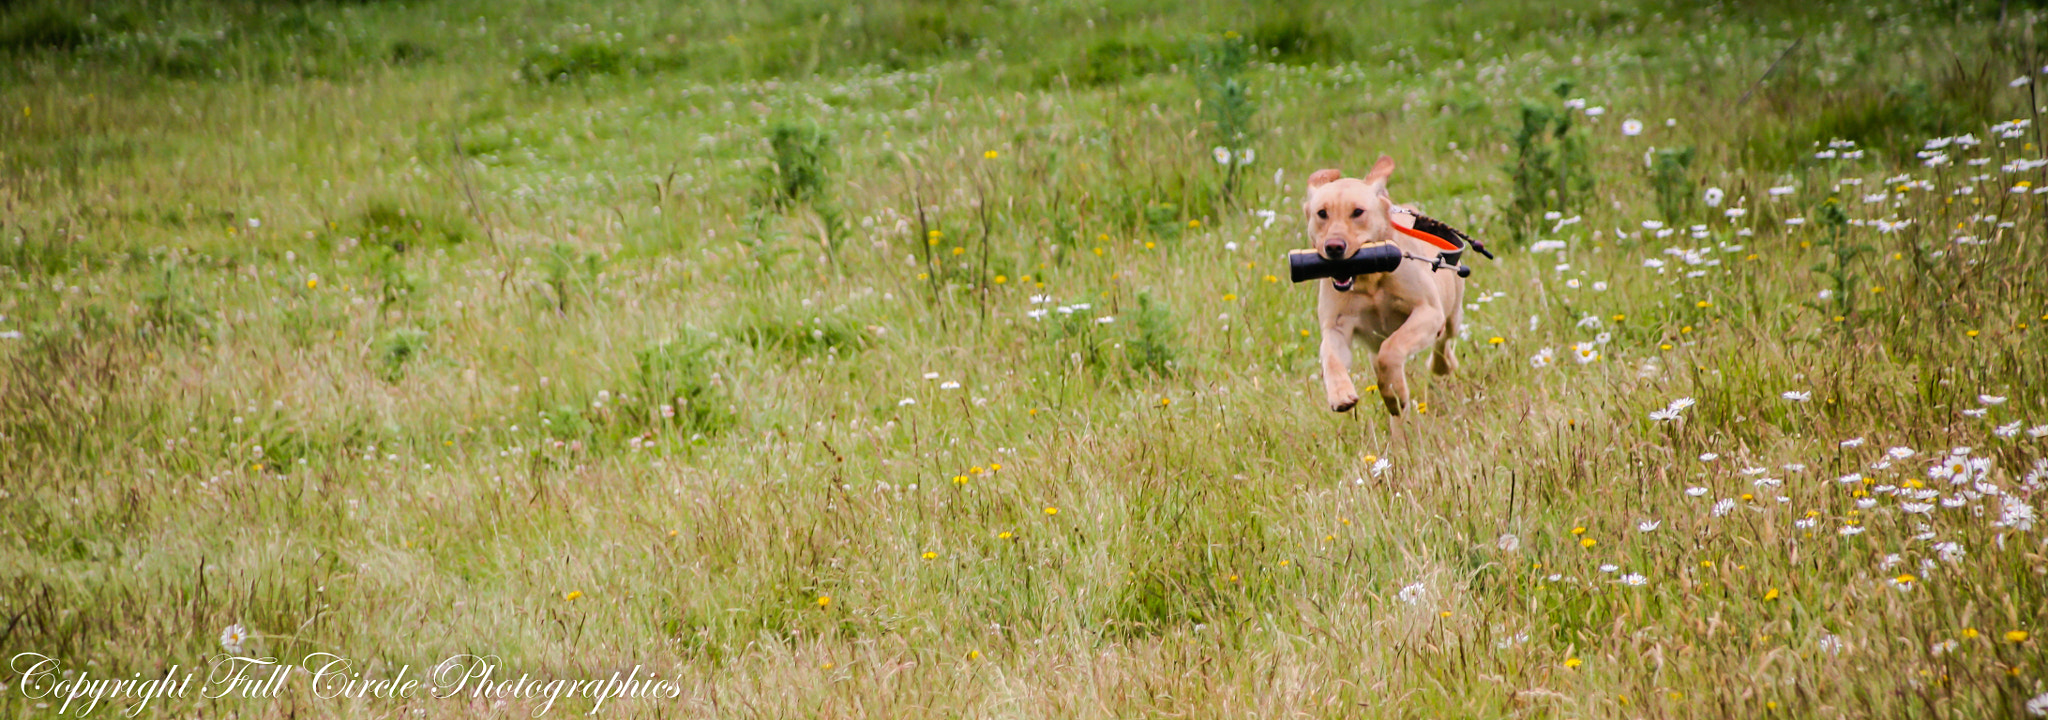 Photograph Fetch III by Pandyce McCluer on 500px